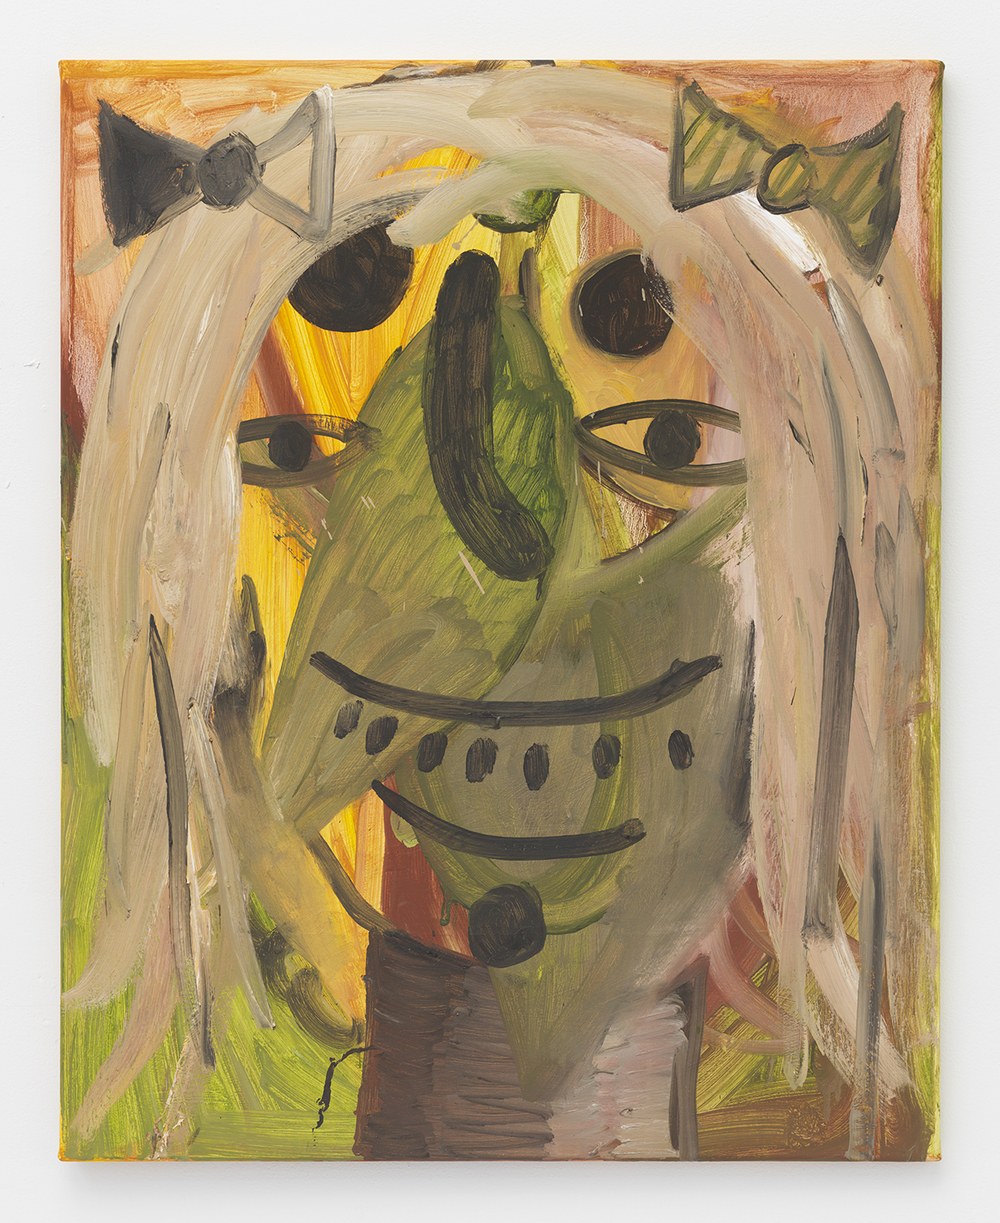 Brian Kokoska  Banjo Tabitha , 2014 Oil acrylic and spray paint on canvas 34 x 27 inches